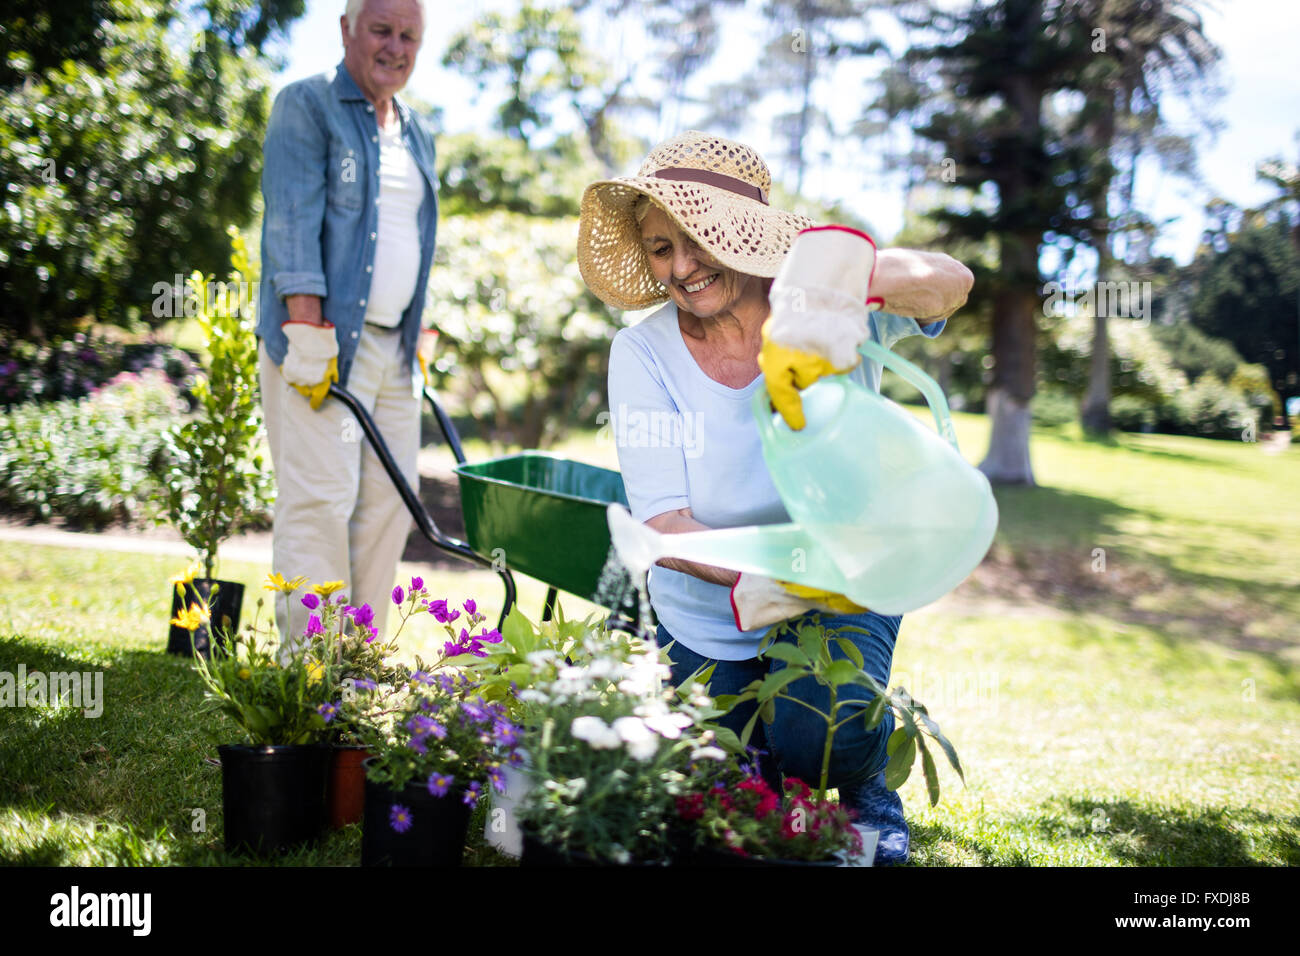 Senior woman watering flower plant in the park - Stock Image